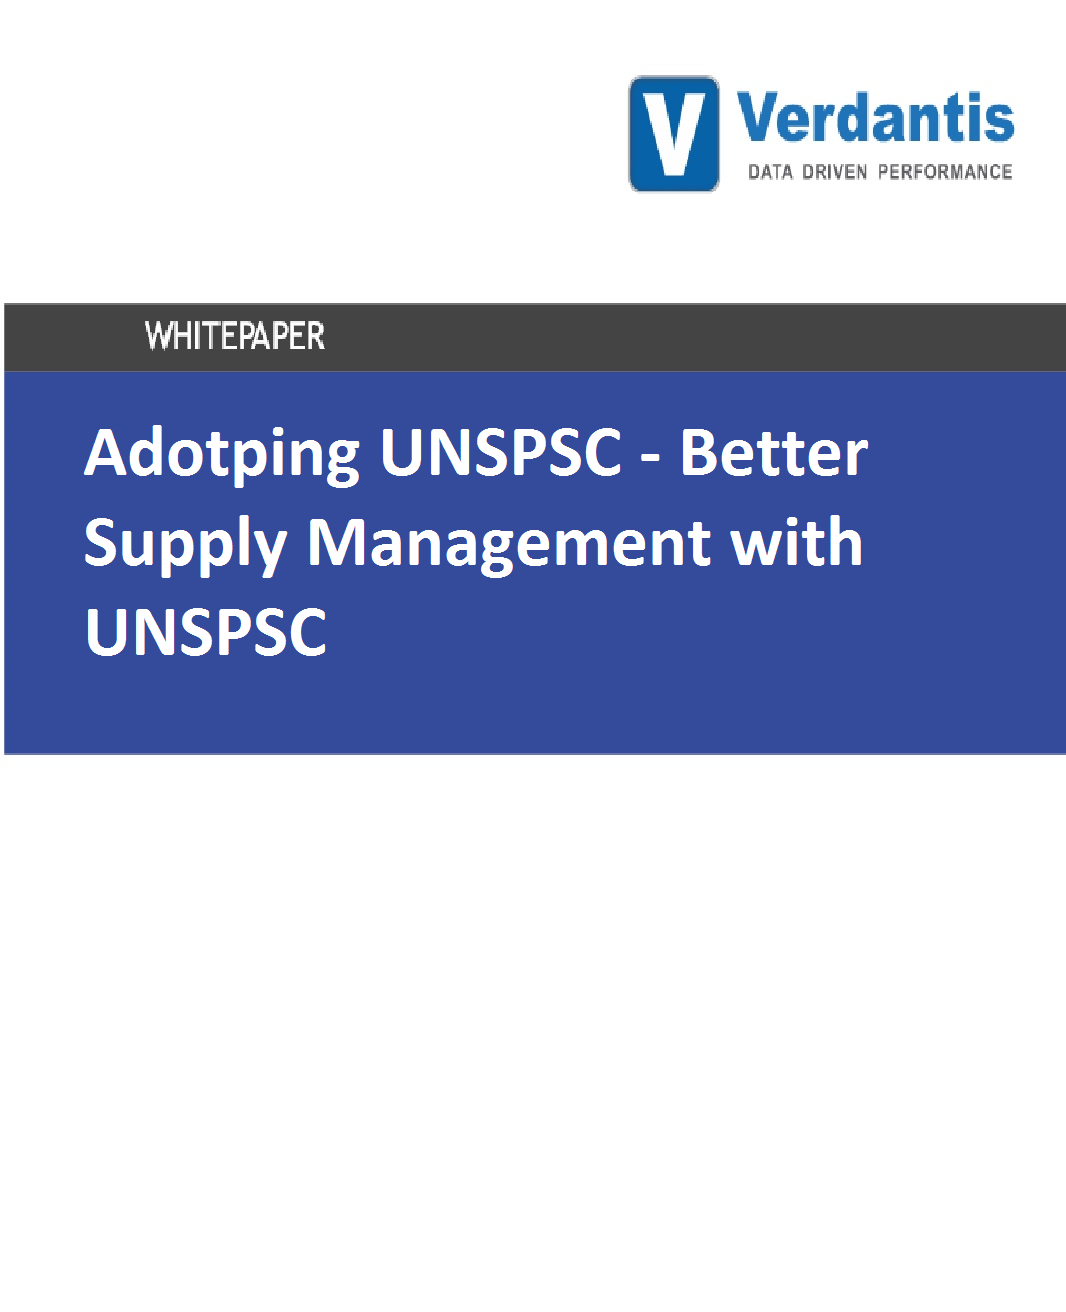 Adopting UNSPSC - Better Supply Management with UNSPSC